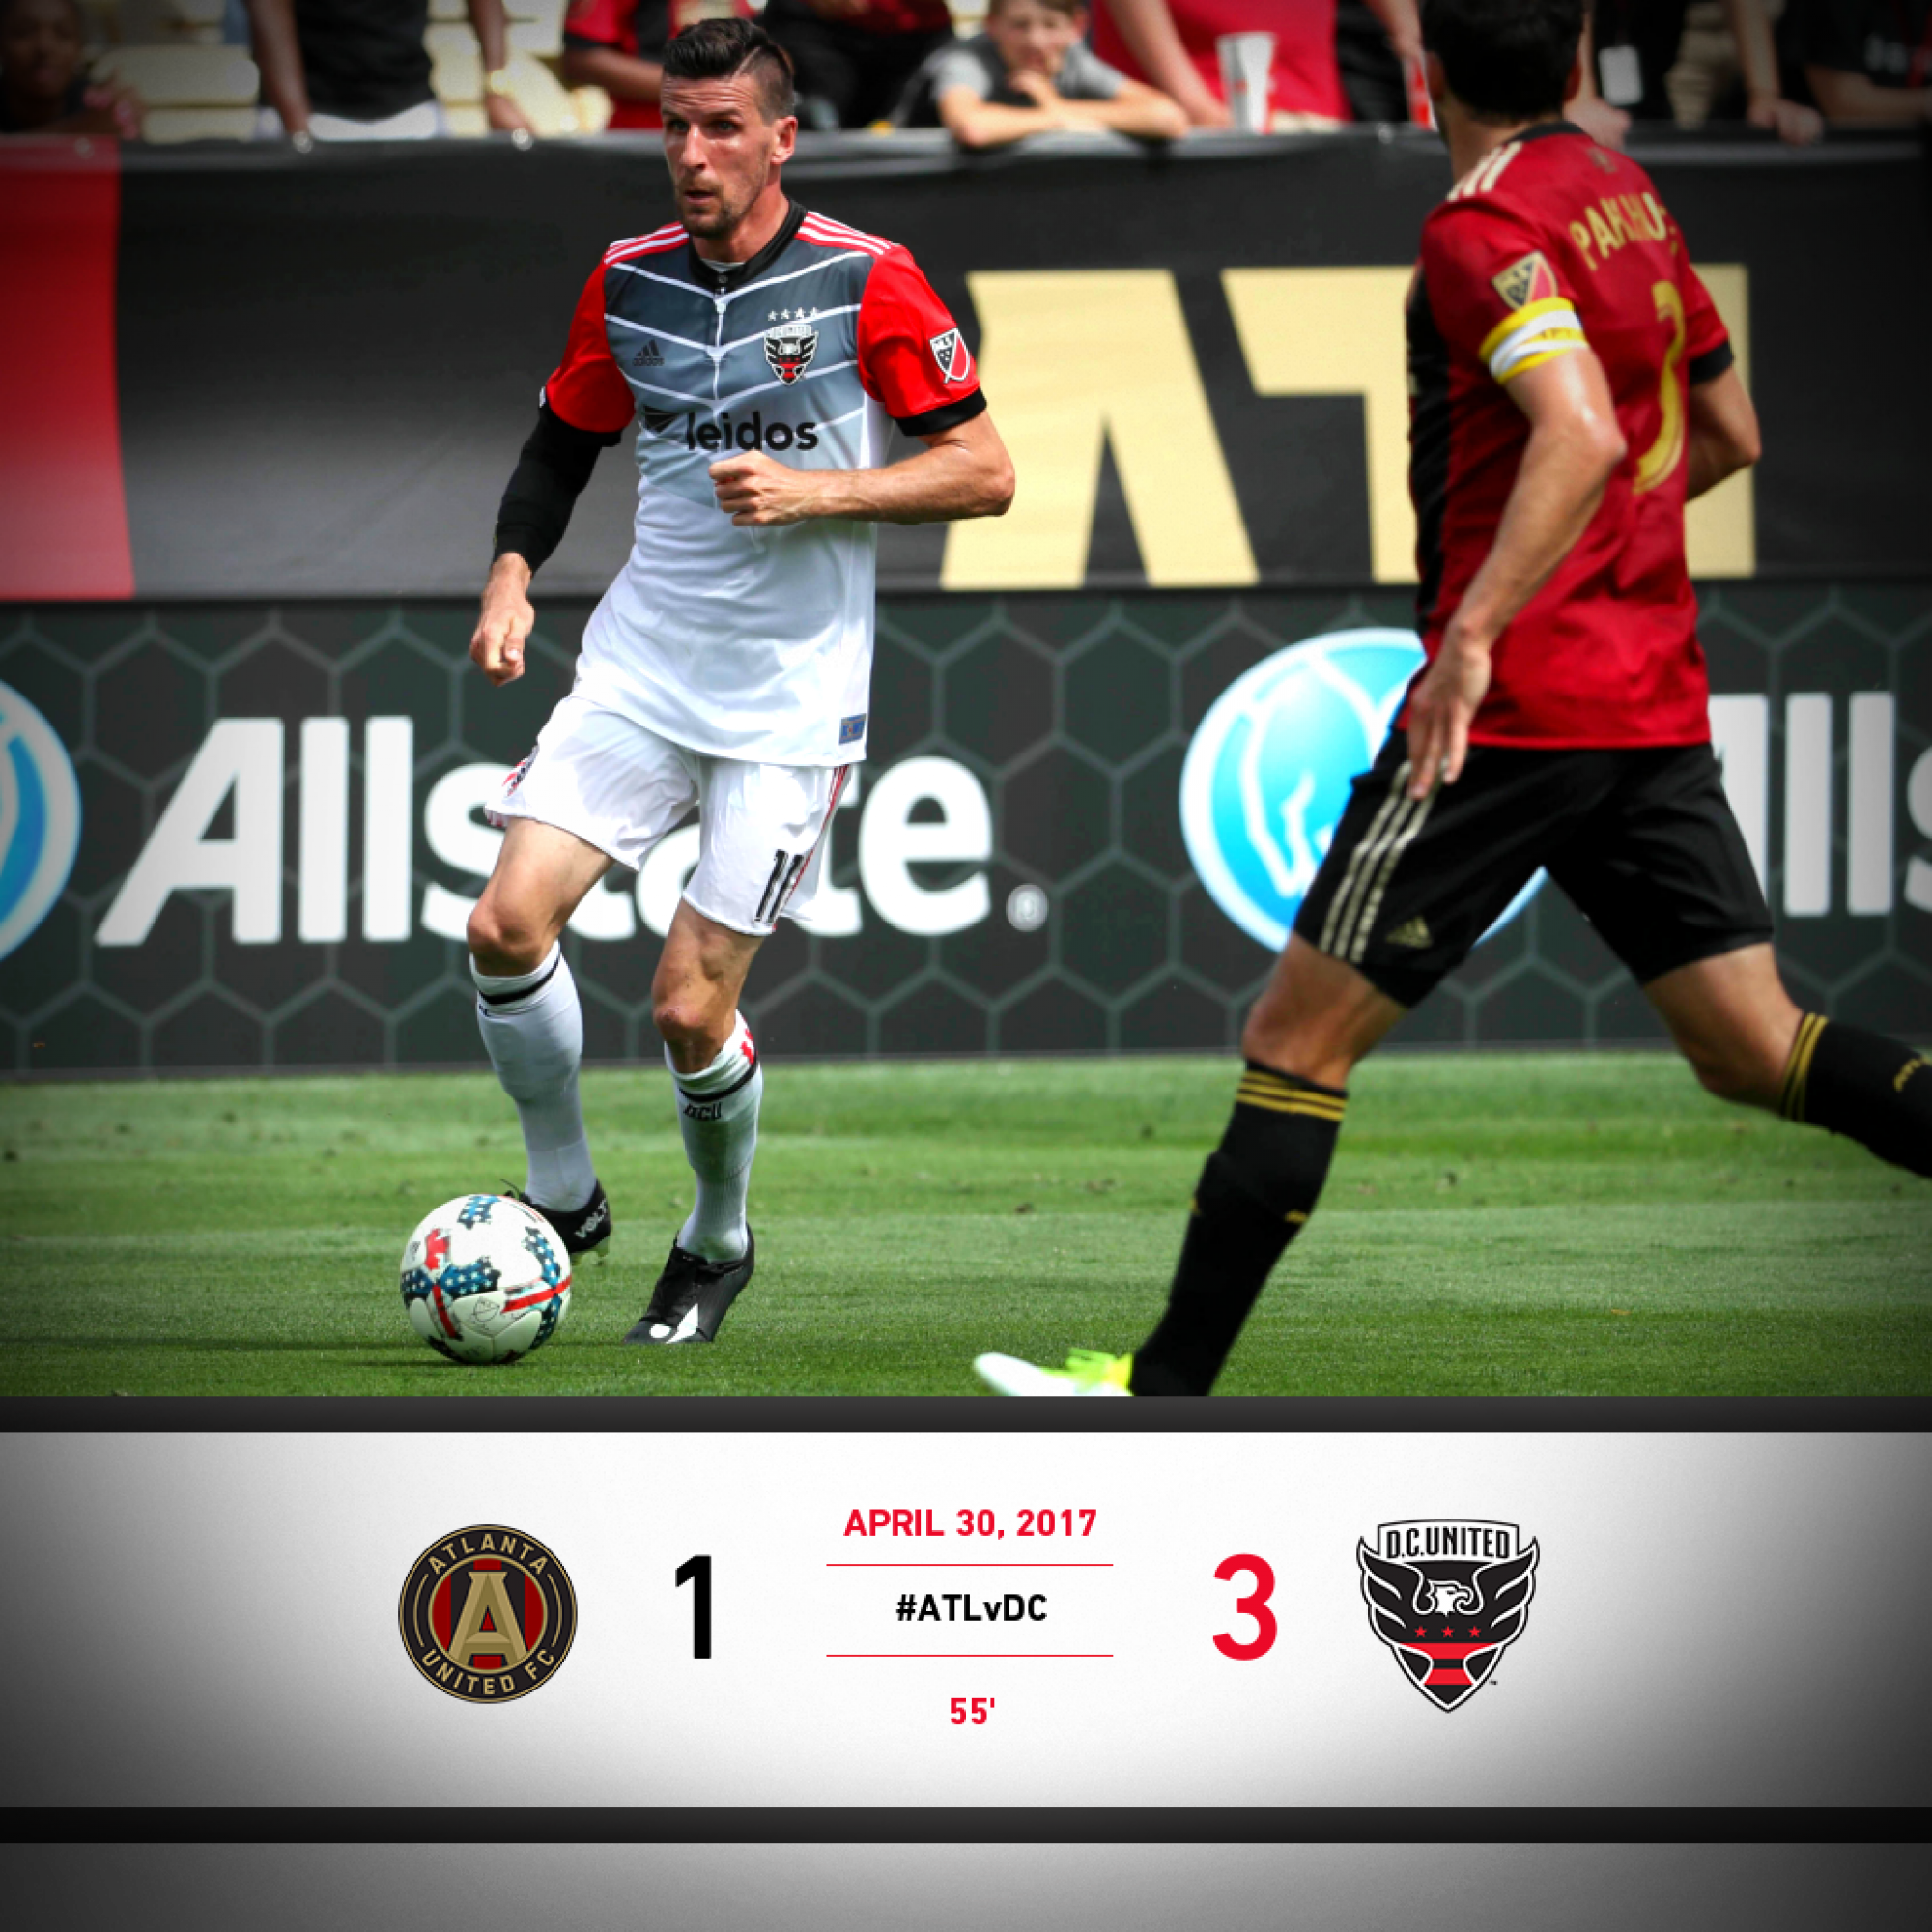 mls_dcunited2017-04-30_14-35-50